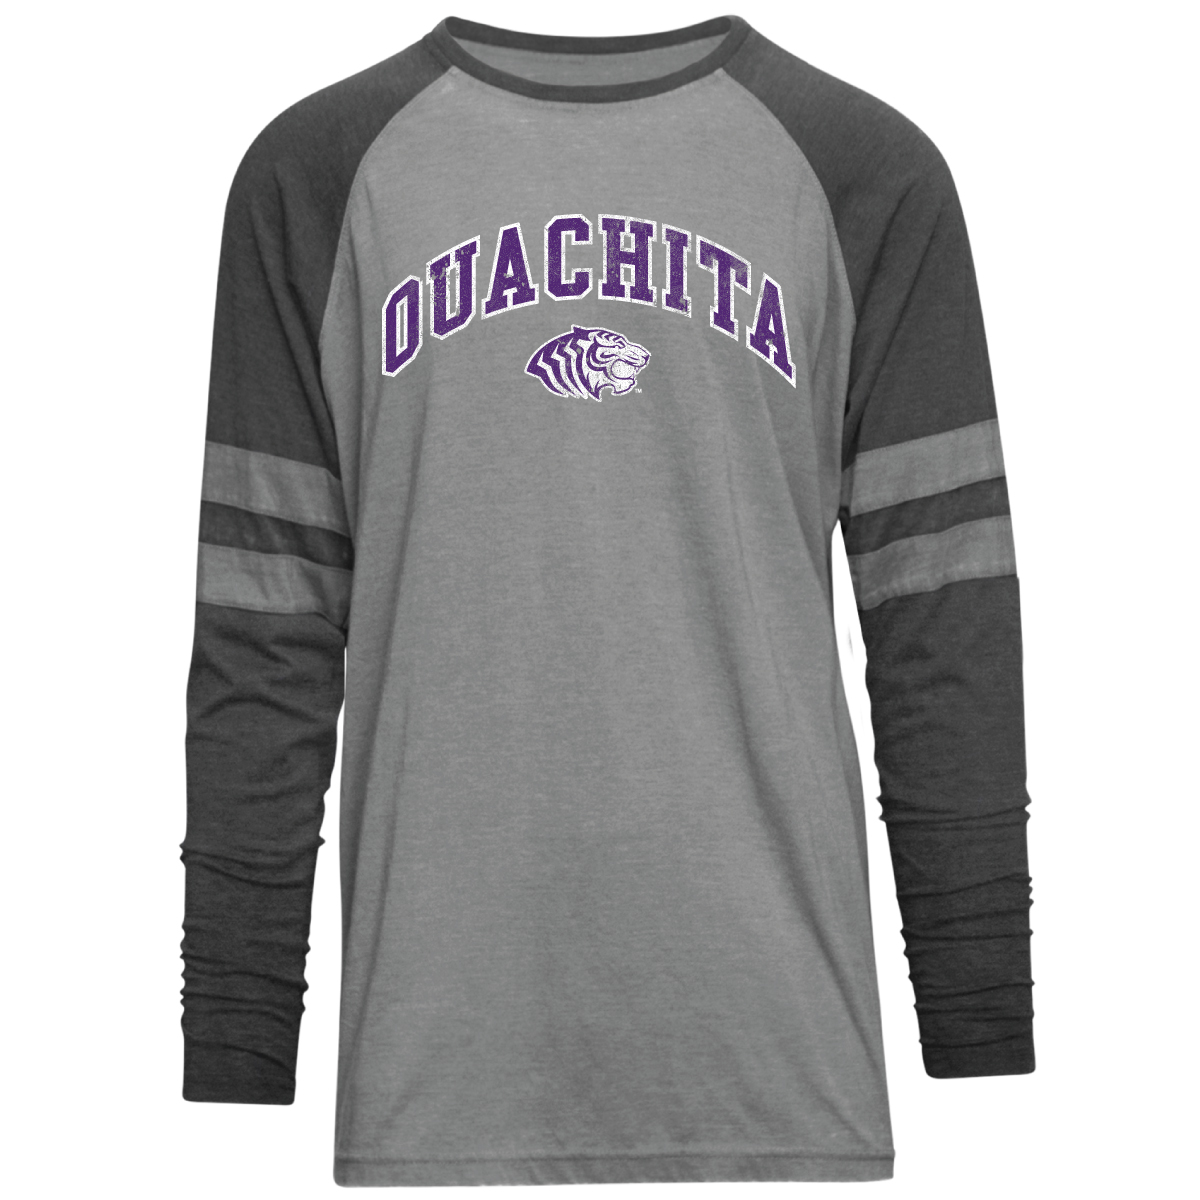 OUACHITA PLAYER LS TEE